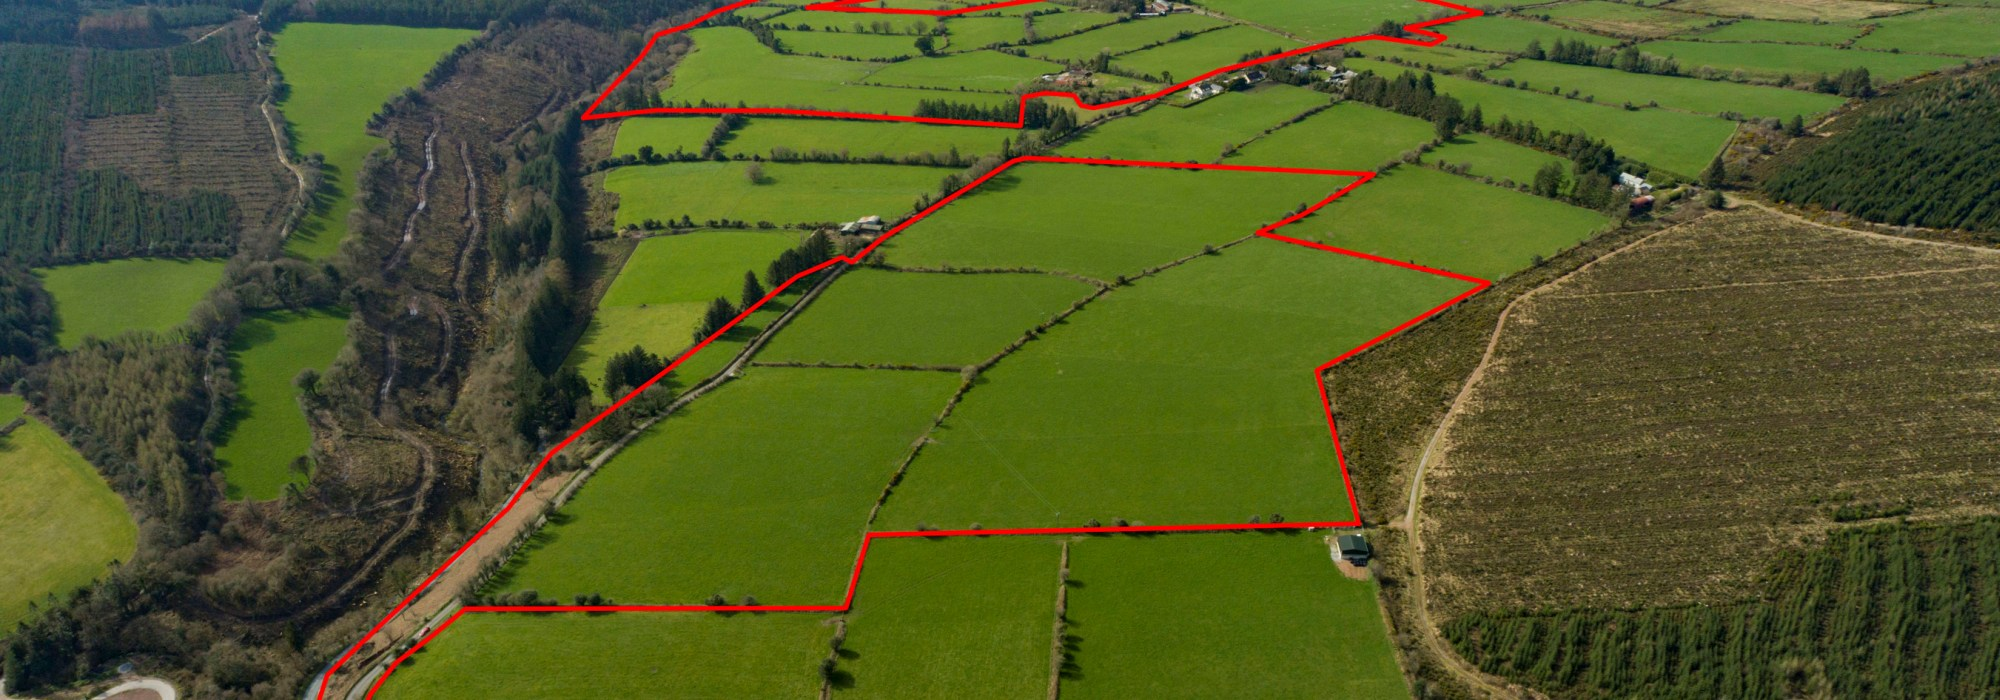 162 Acre Farm | Cronohill, Araglin, Co. Cork